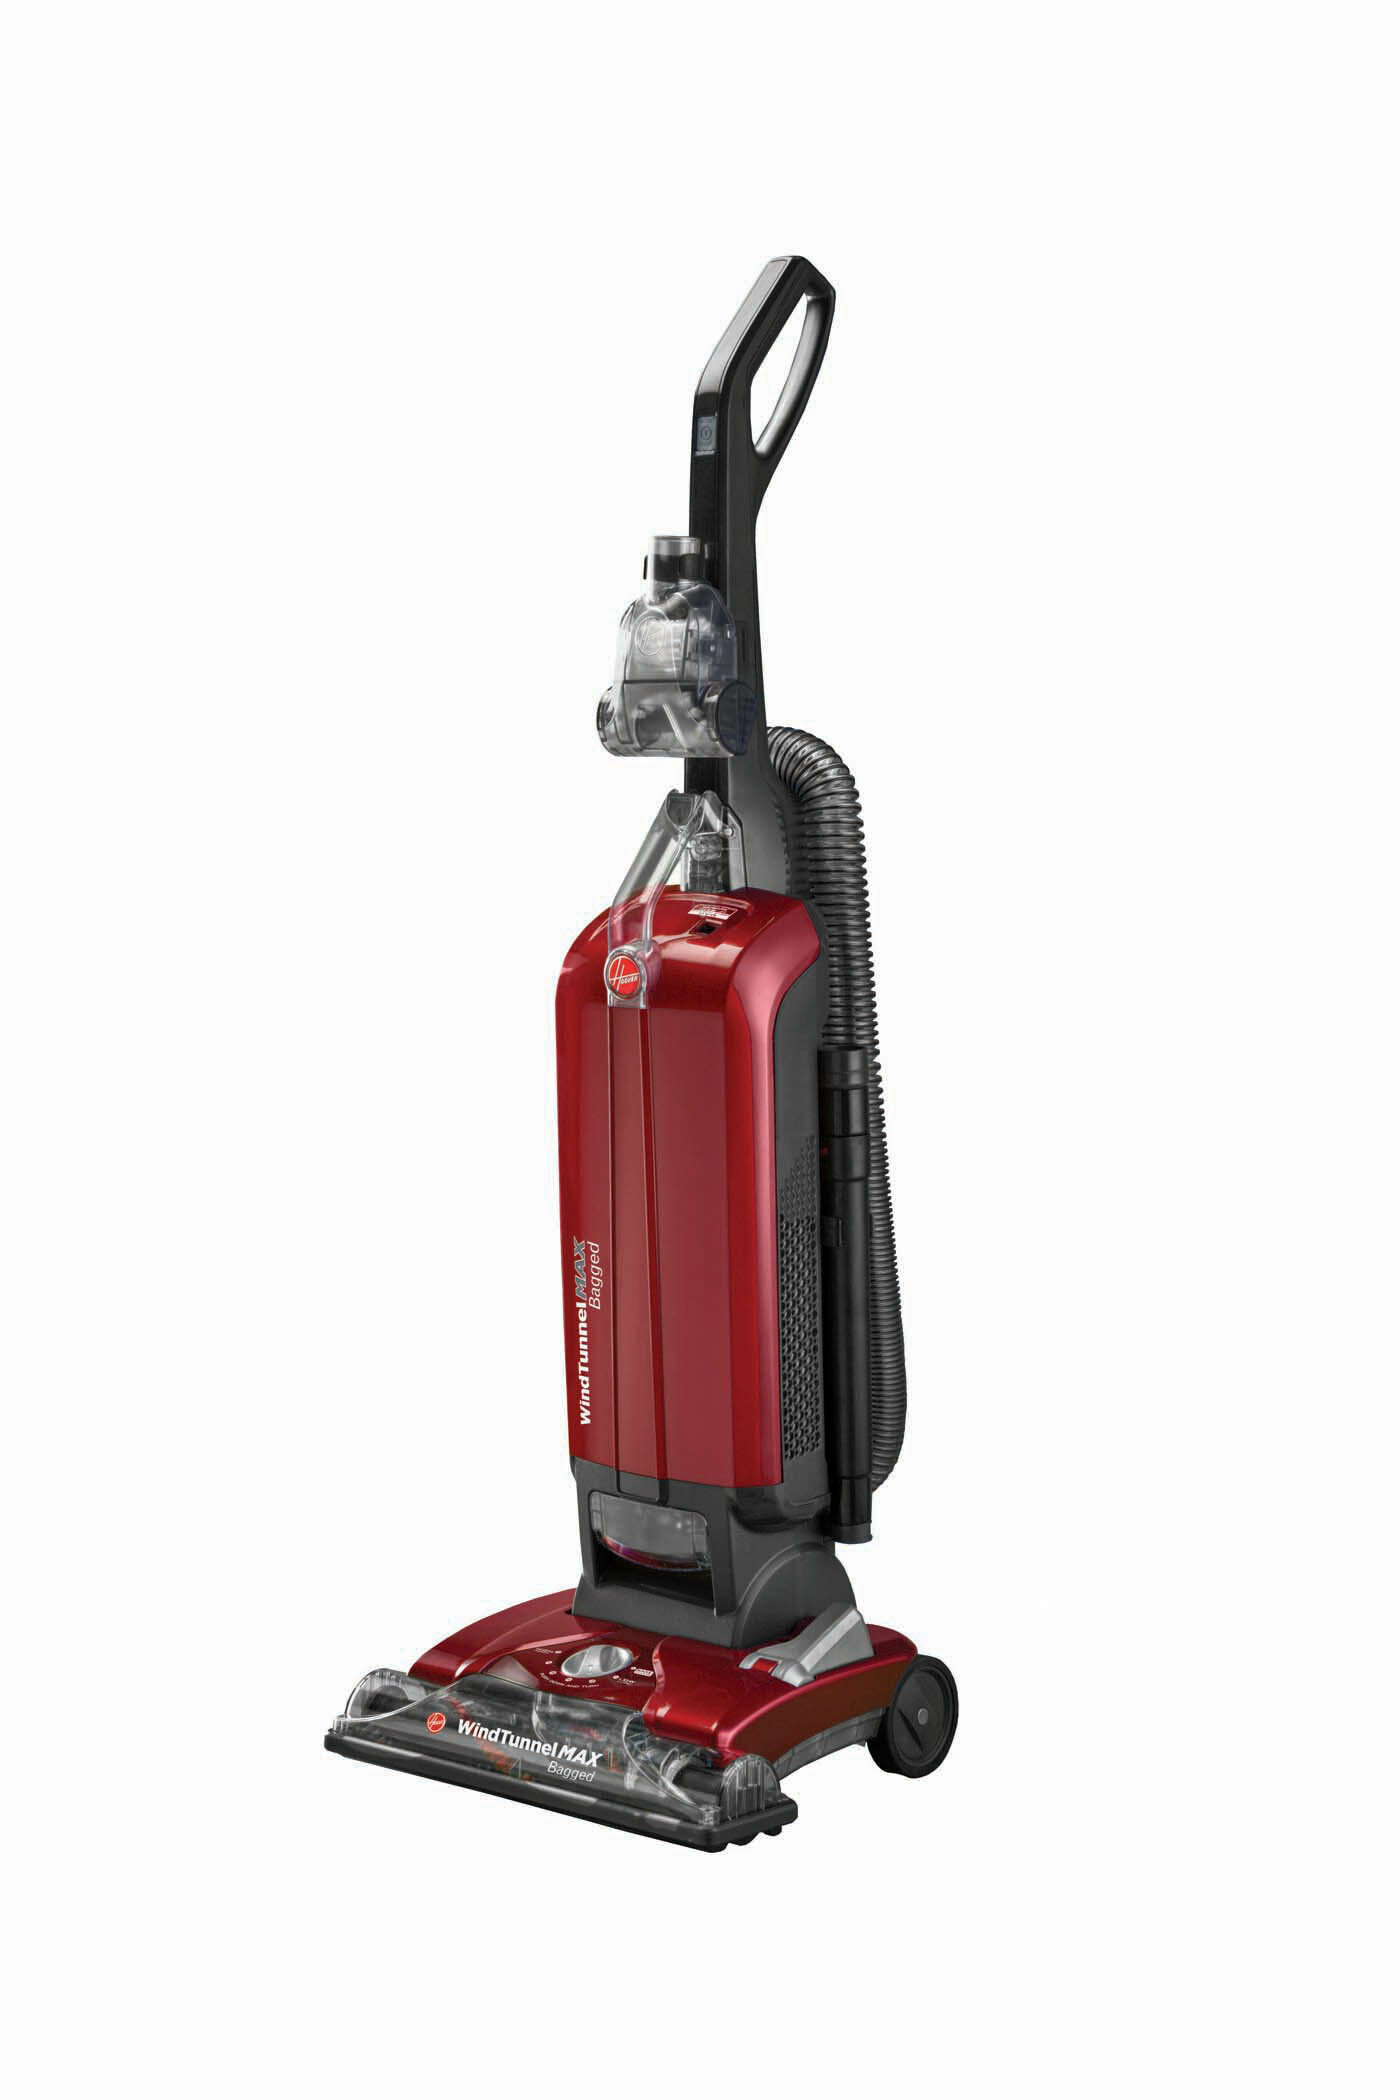 Hoover Max Bagged Wind Tunnel Upright Vacuum